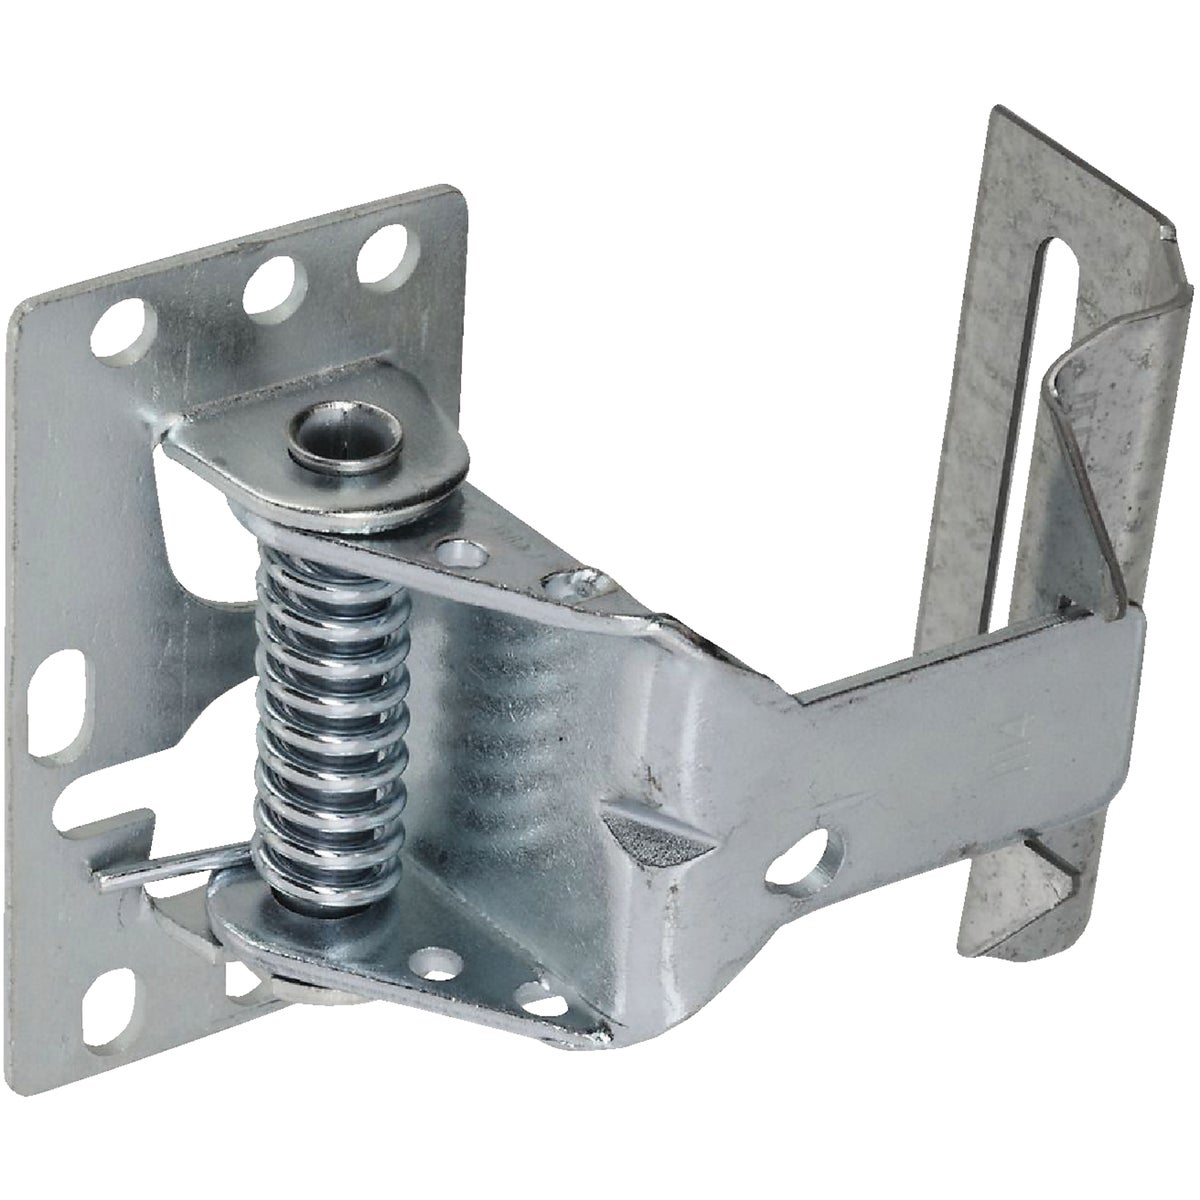 SNAP LOCK - N280800 by National Mfg Co